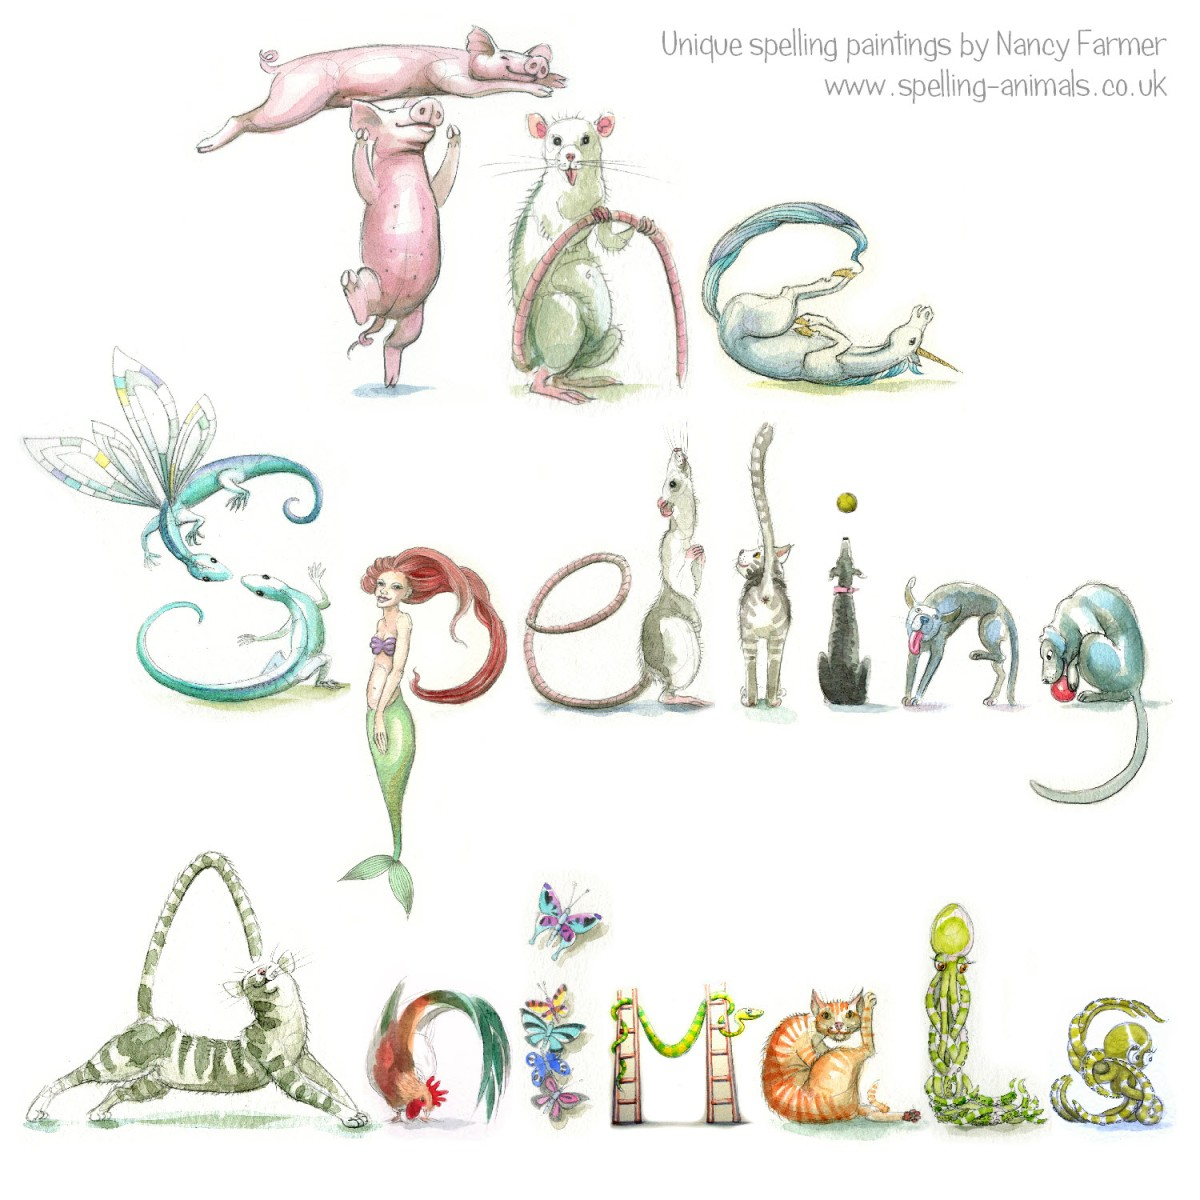 The Spelling Animals - flier